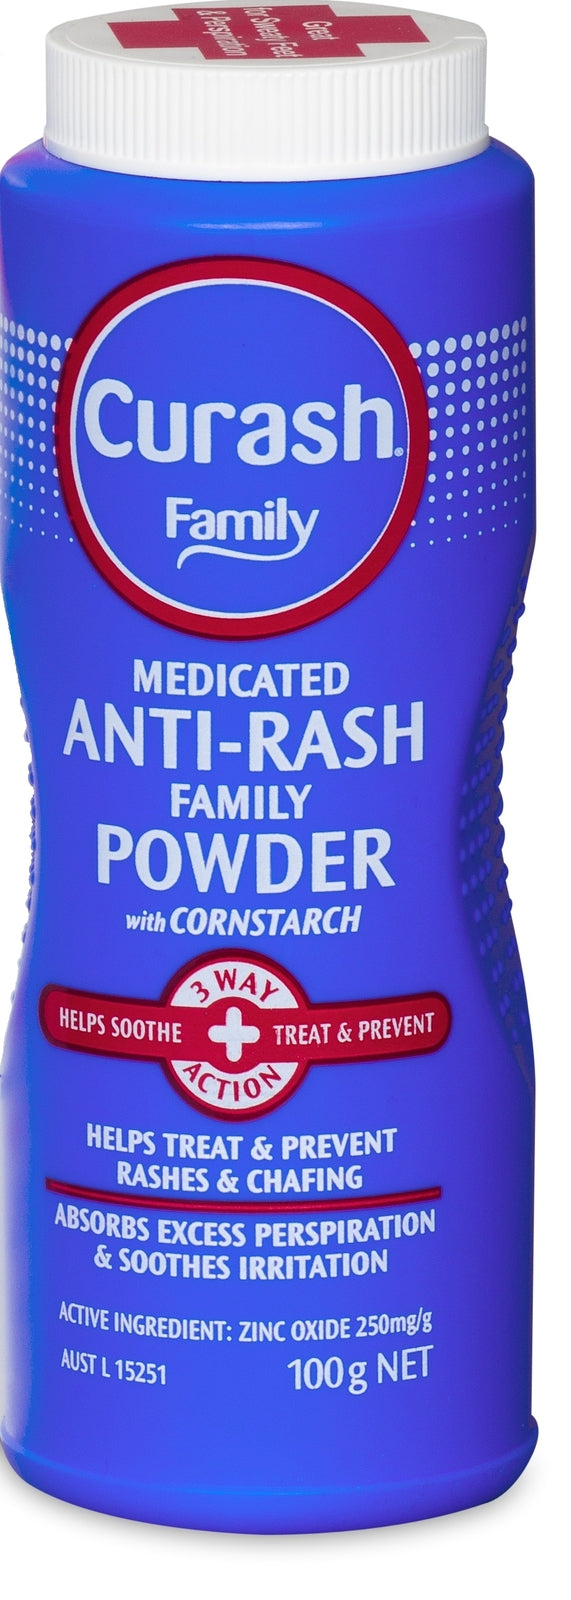 Curash Family Medicated Anti-Rash Family Powder - 100g